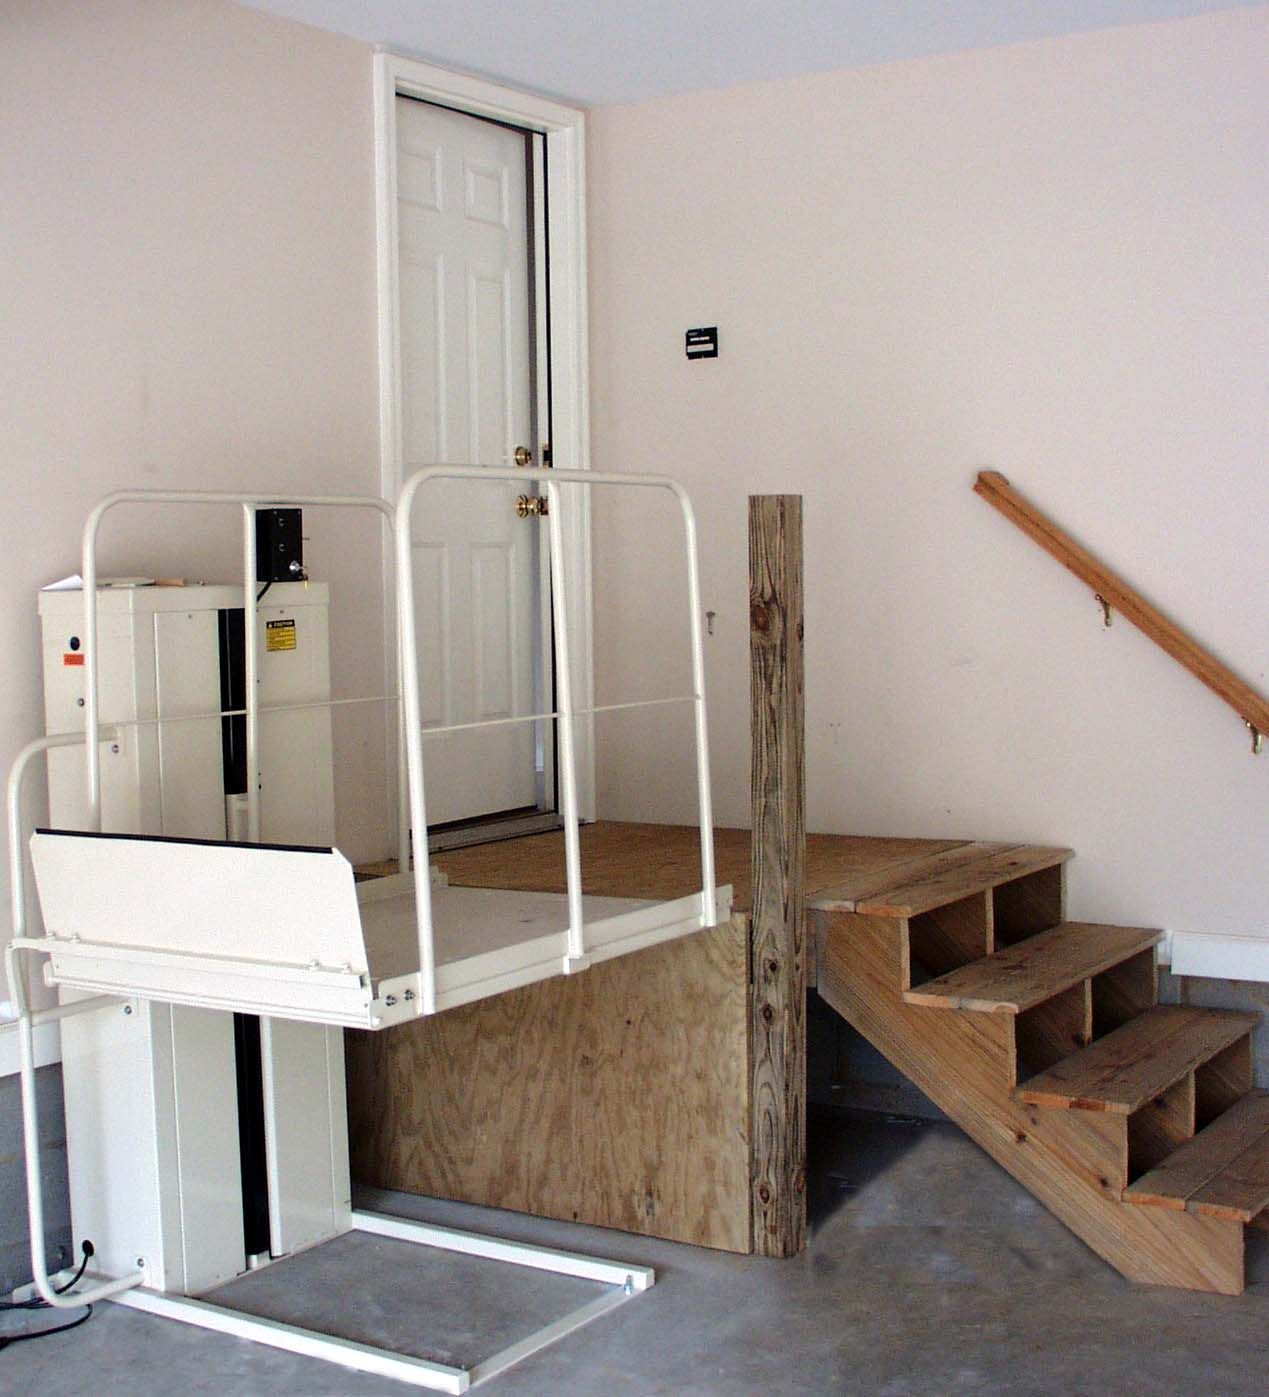 Wheelchair ramp in garage low cost solutions for making Wheelchair accessible housing